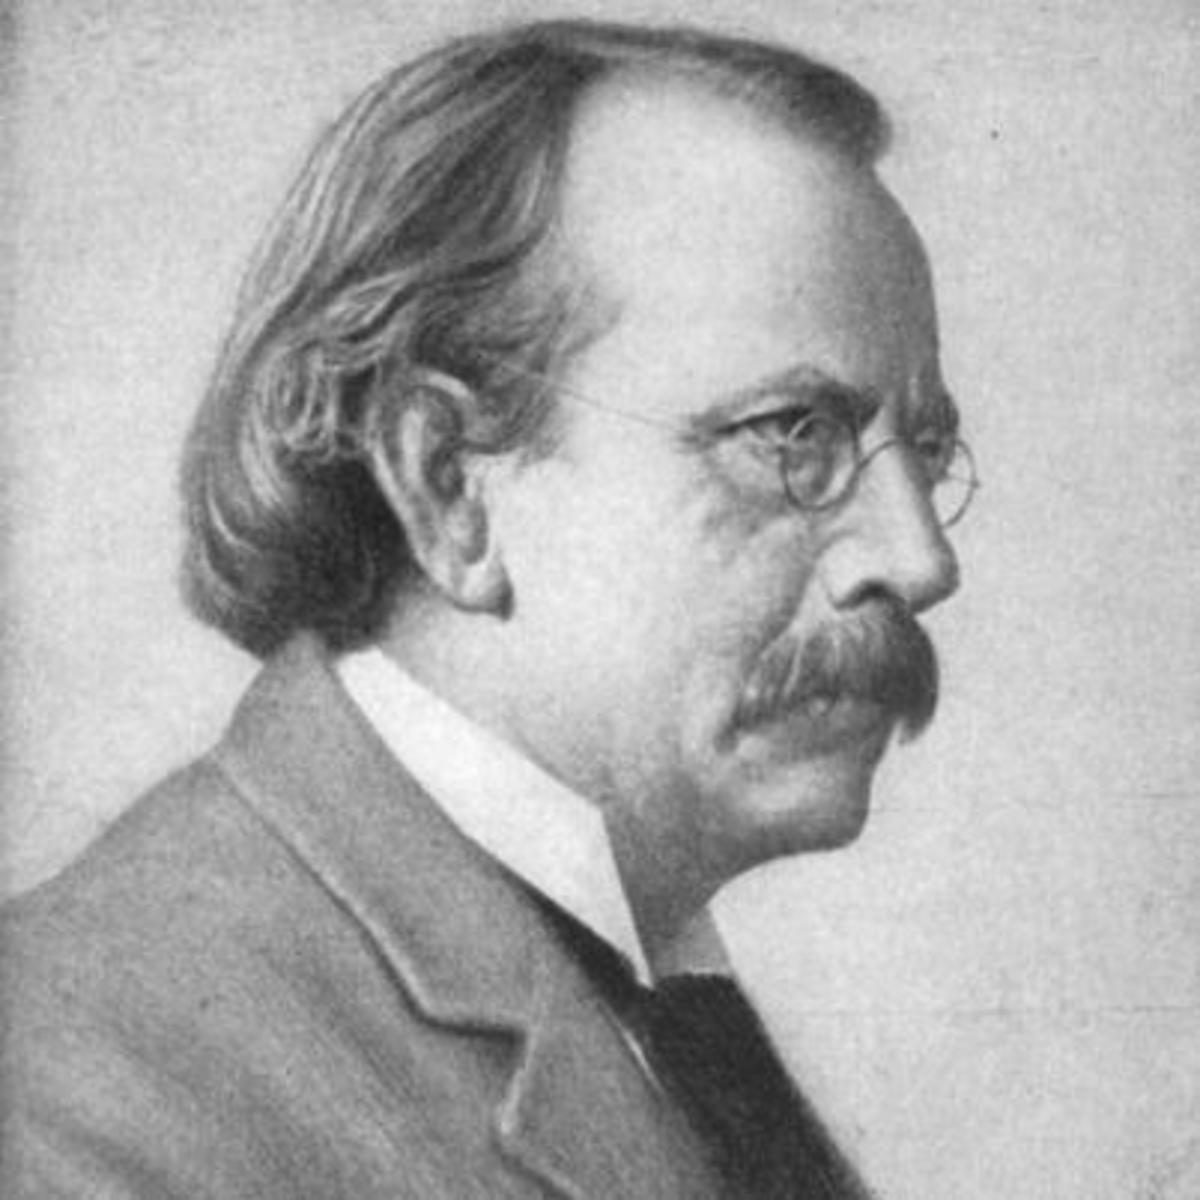 jj thomson physicist academic scientist biography